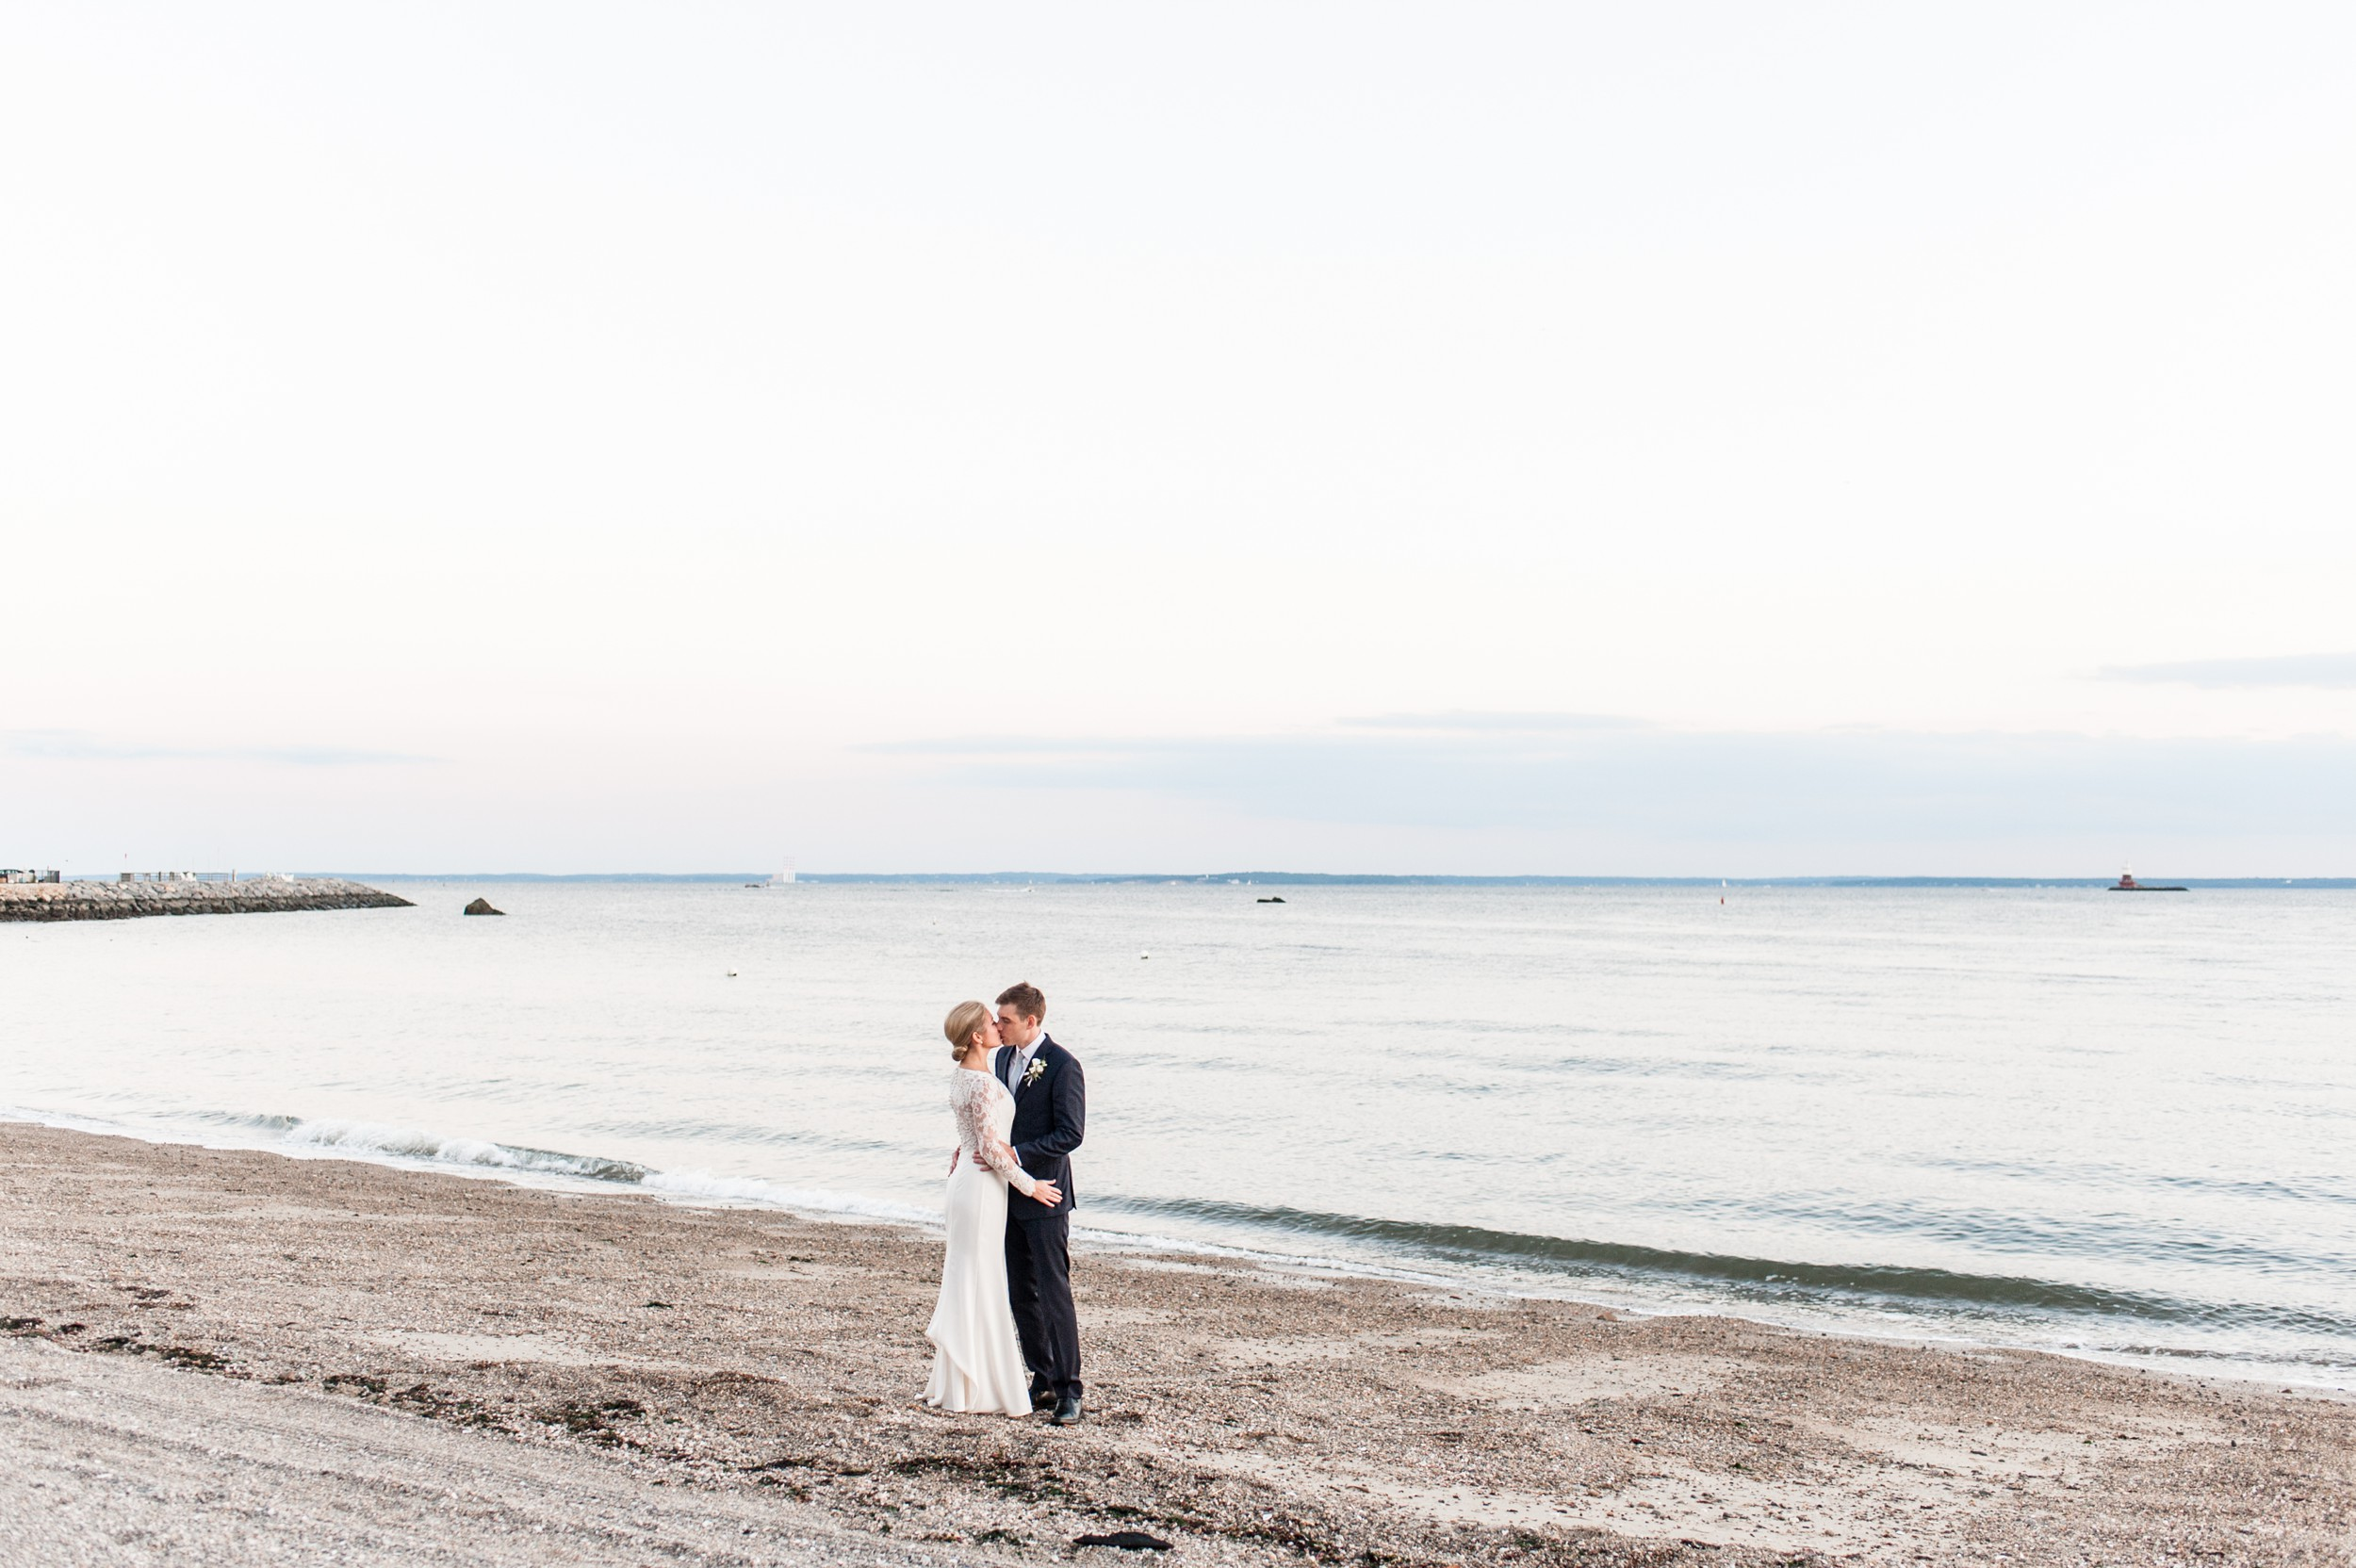 Wee Burn Beach Club Wedding Darien CT sunset portraits of bride and groom on the beach